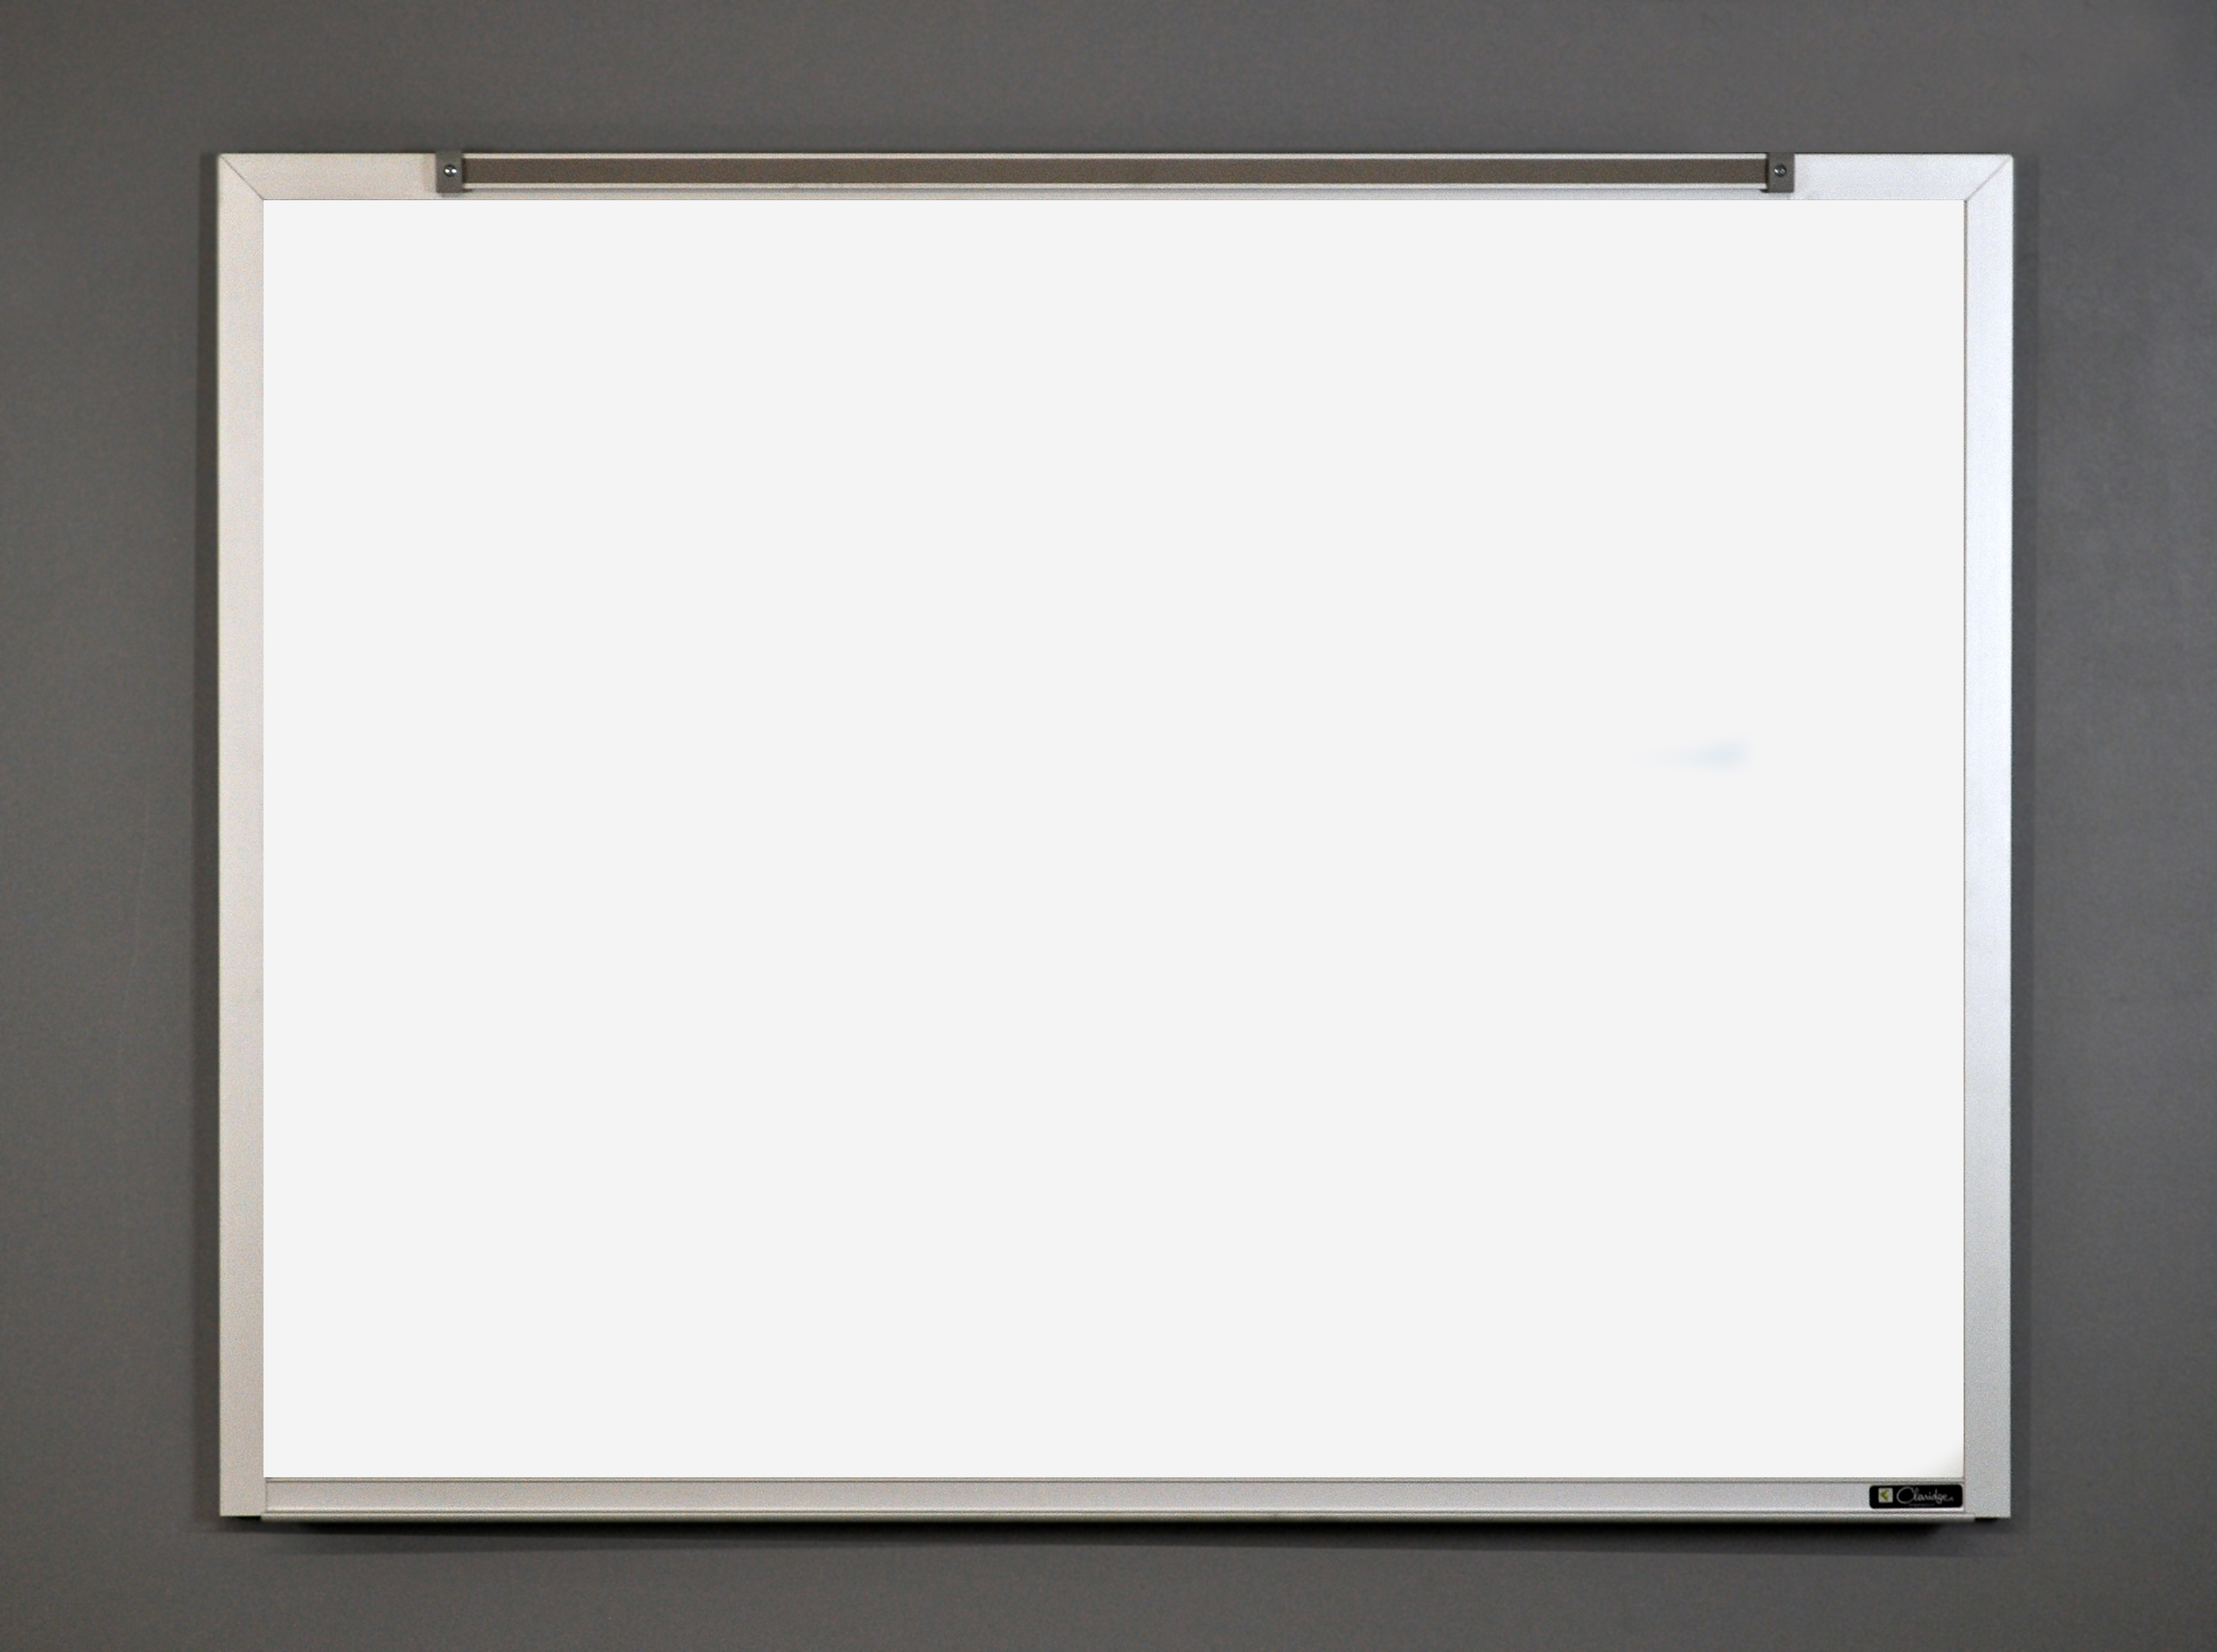 1300 SERIES - Dry Erase Markerboard with 1 1/4